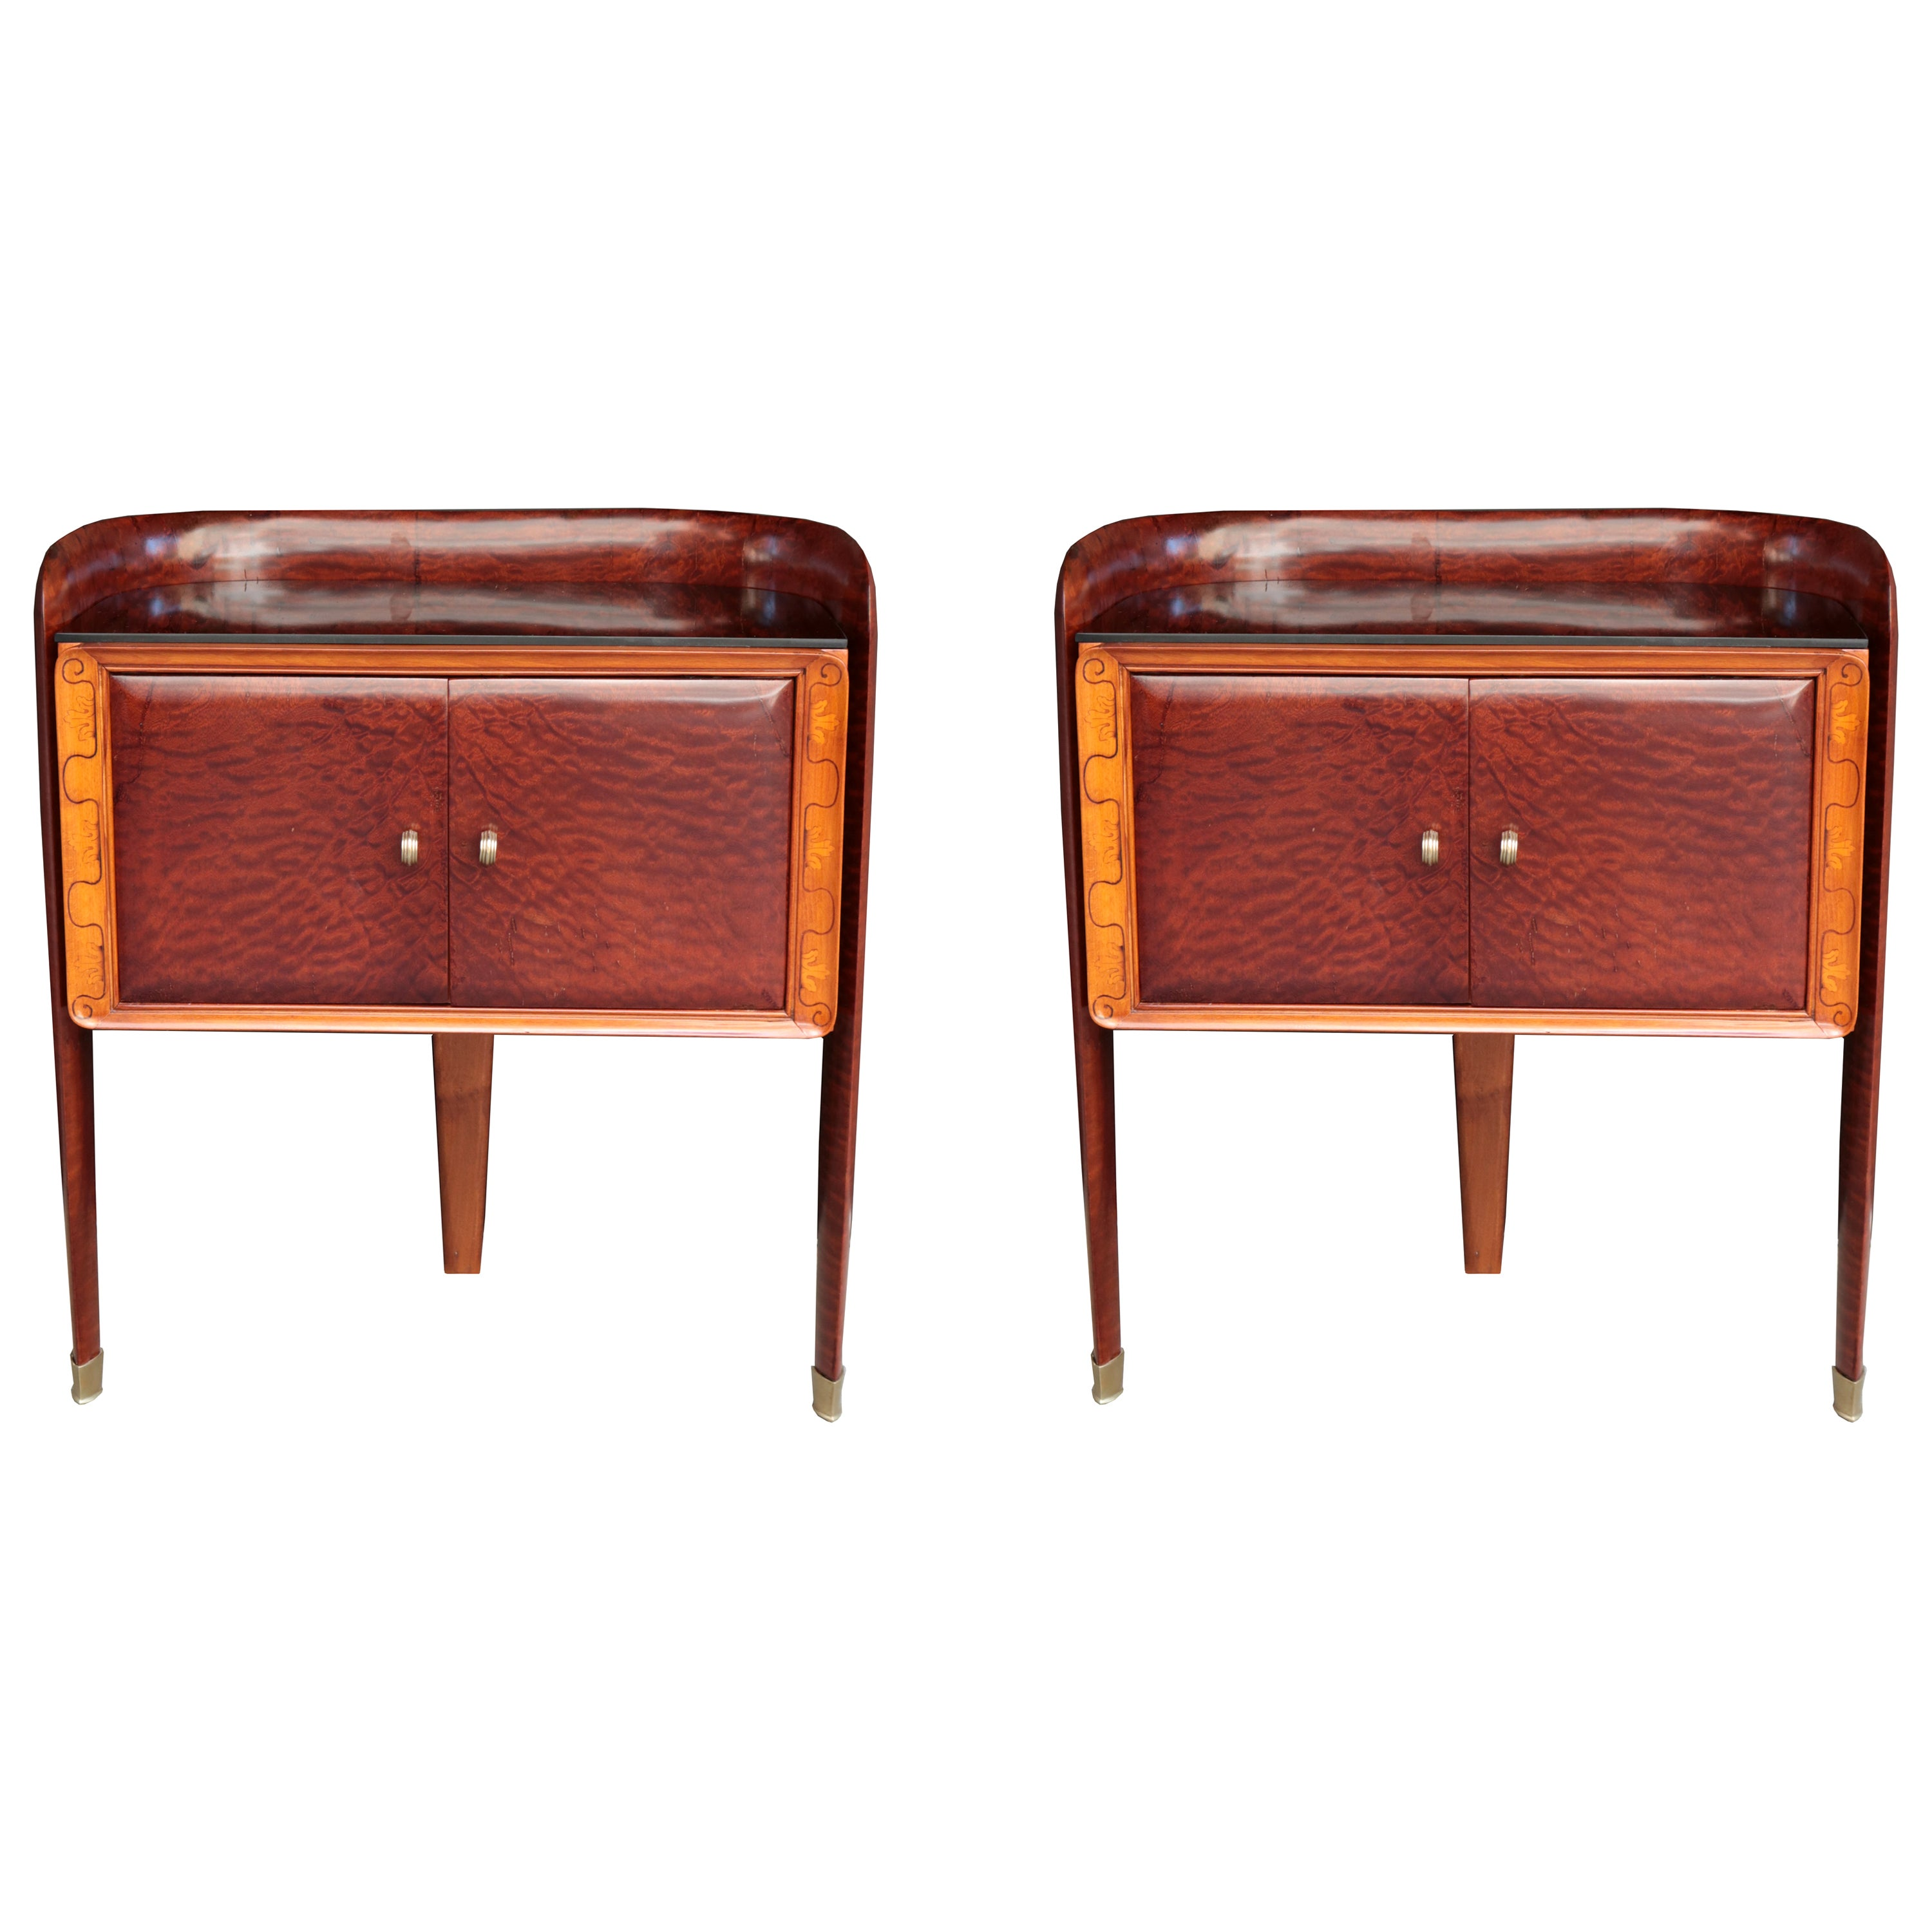 Pair of Small Italian Bedside Cabinets